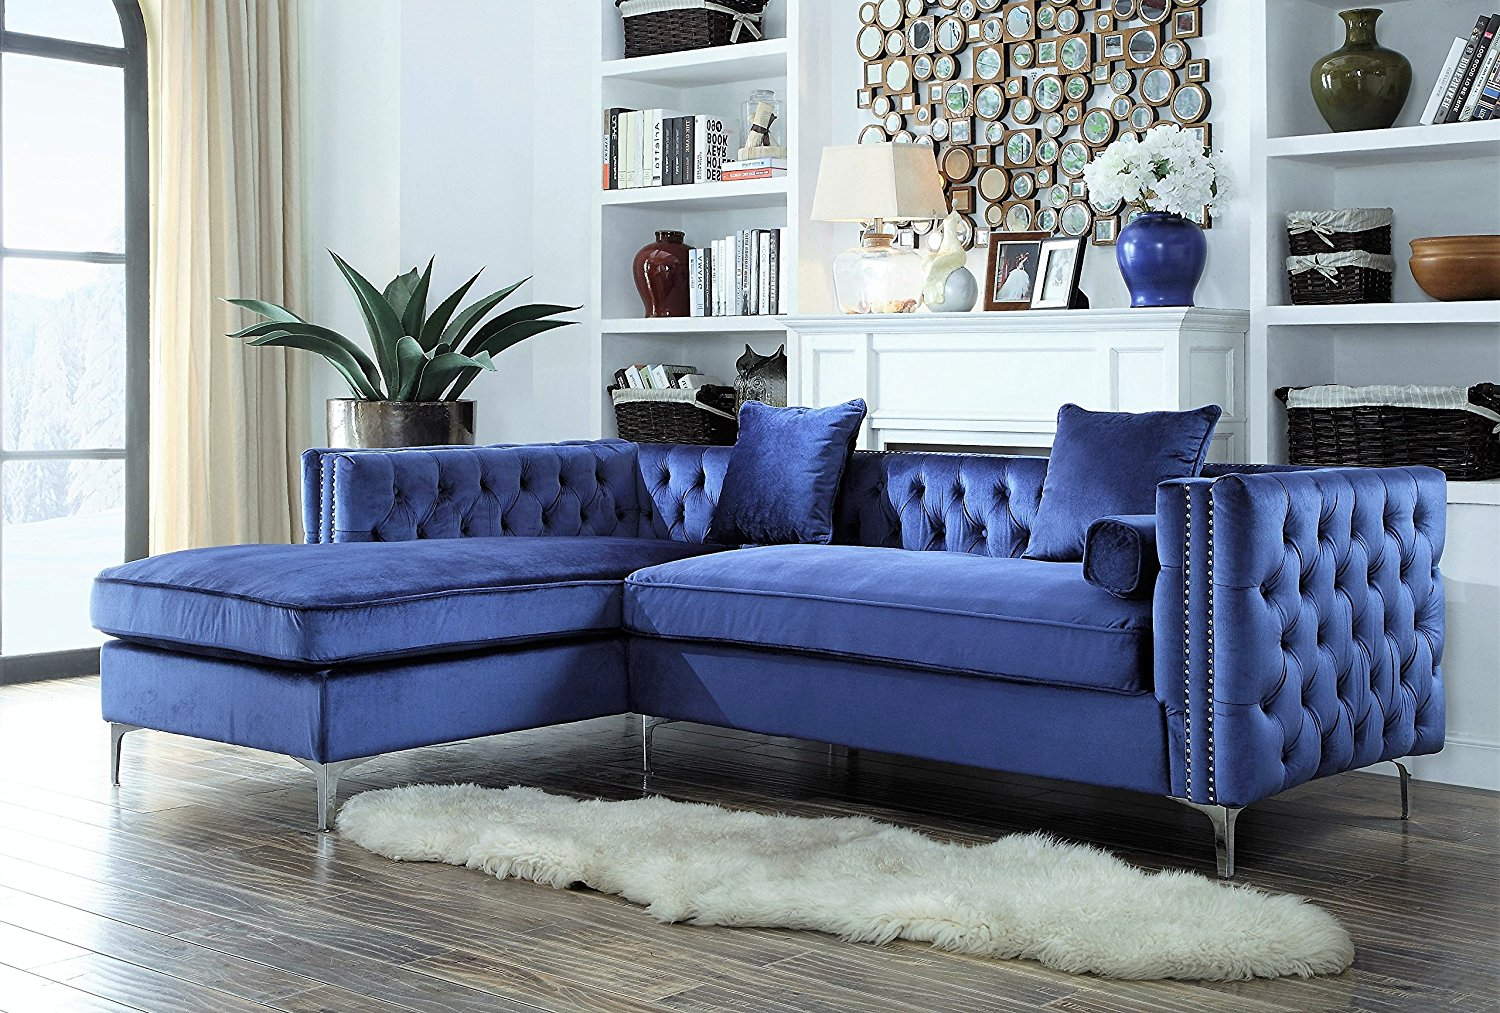 Fancy Navy Blue Velvet Sectional Sofa 71 For Your Living Room Sofa  Inspiration With Navy Blue ...